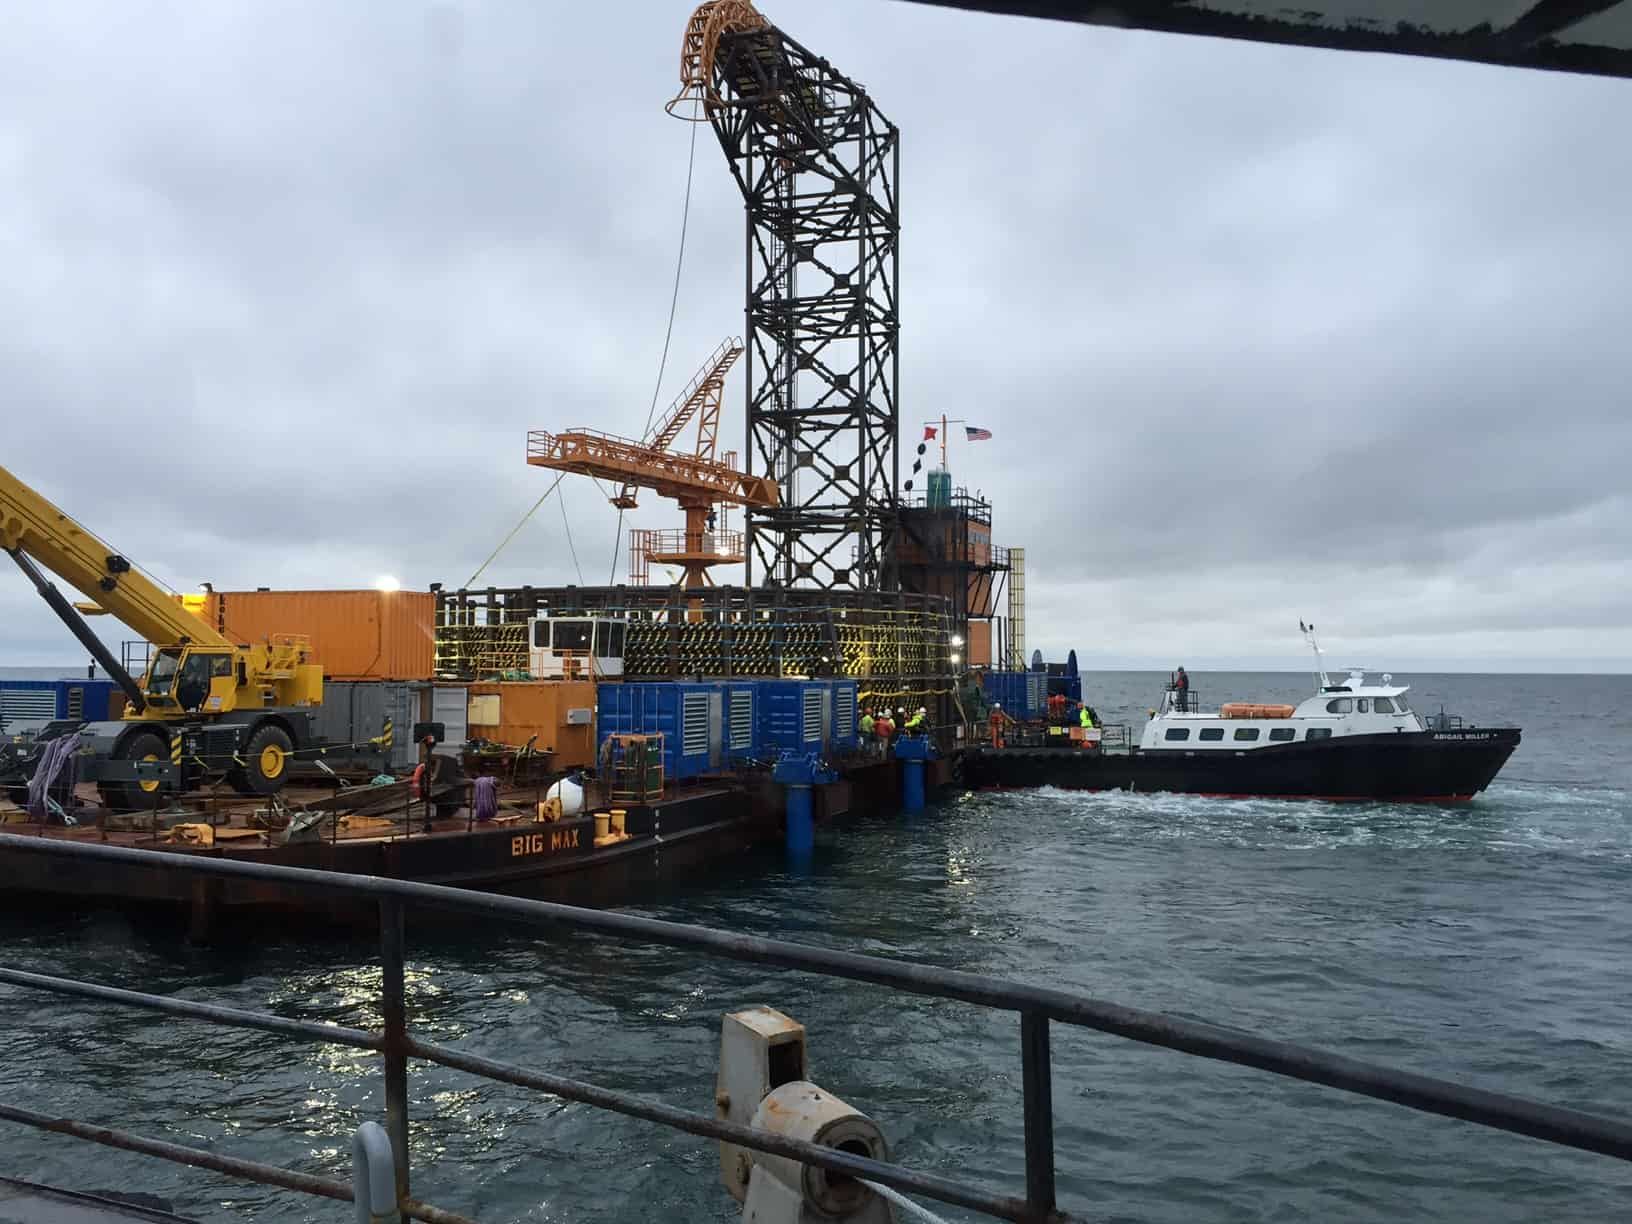 Launch/Stores and Spares Crew Transfer To Cable Laying Barge